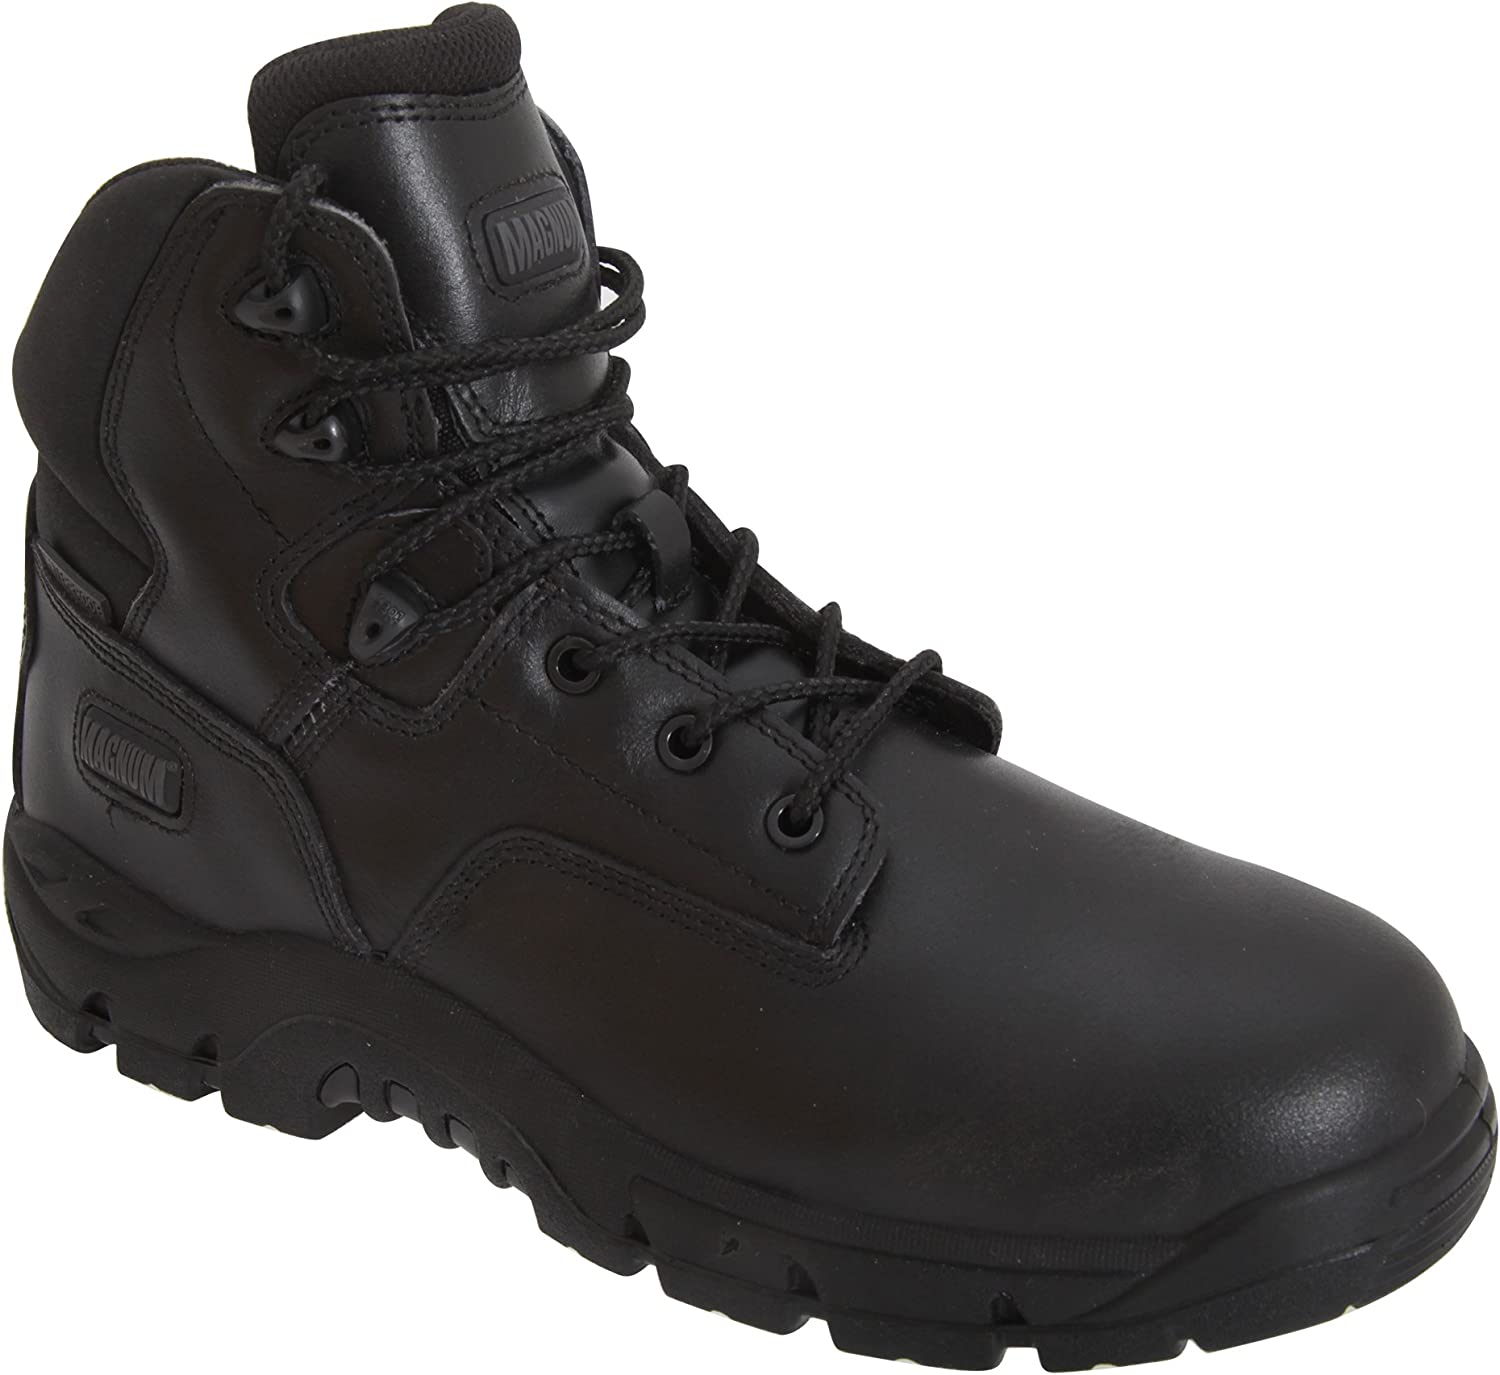 Magnum Mens Precision Sitemaster Fully Composite Waterproof Safety Boots